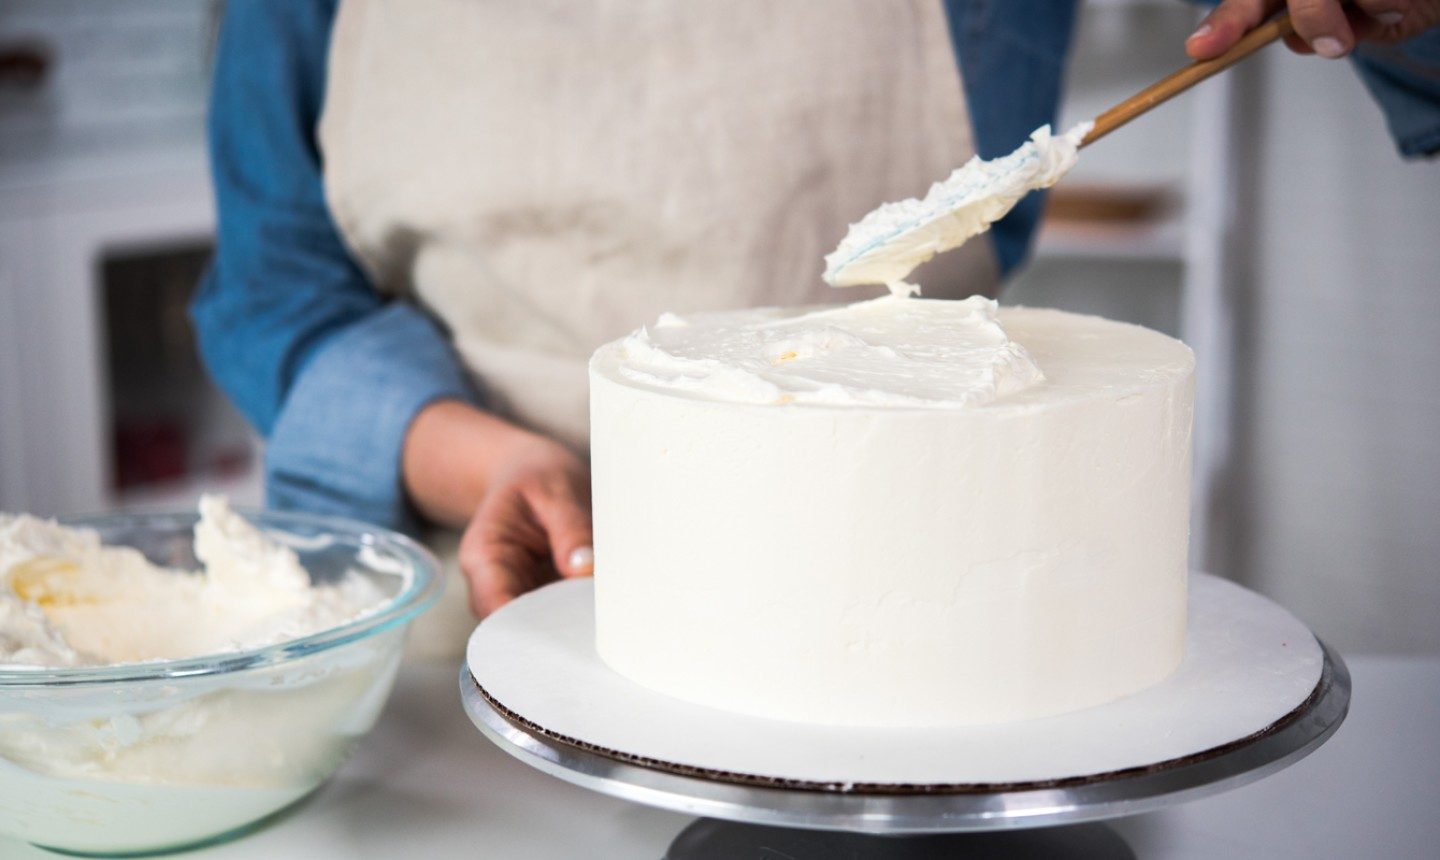 putting frosting a cake